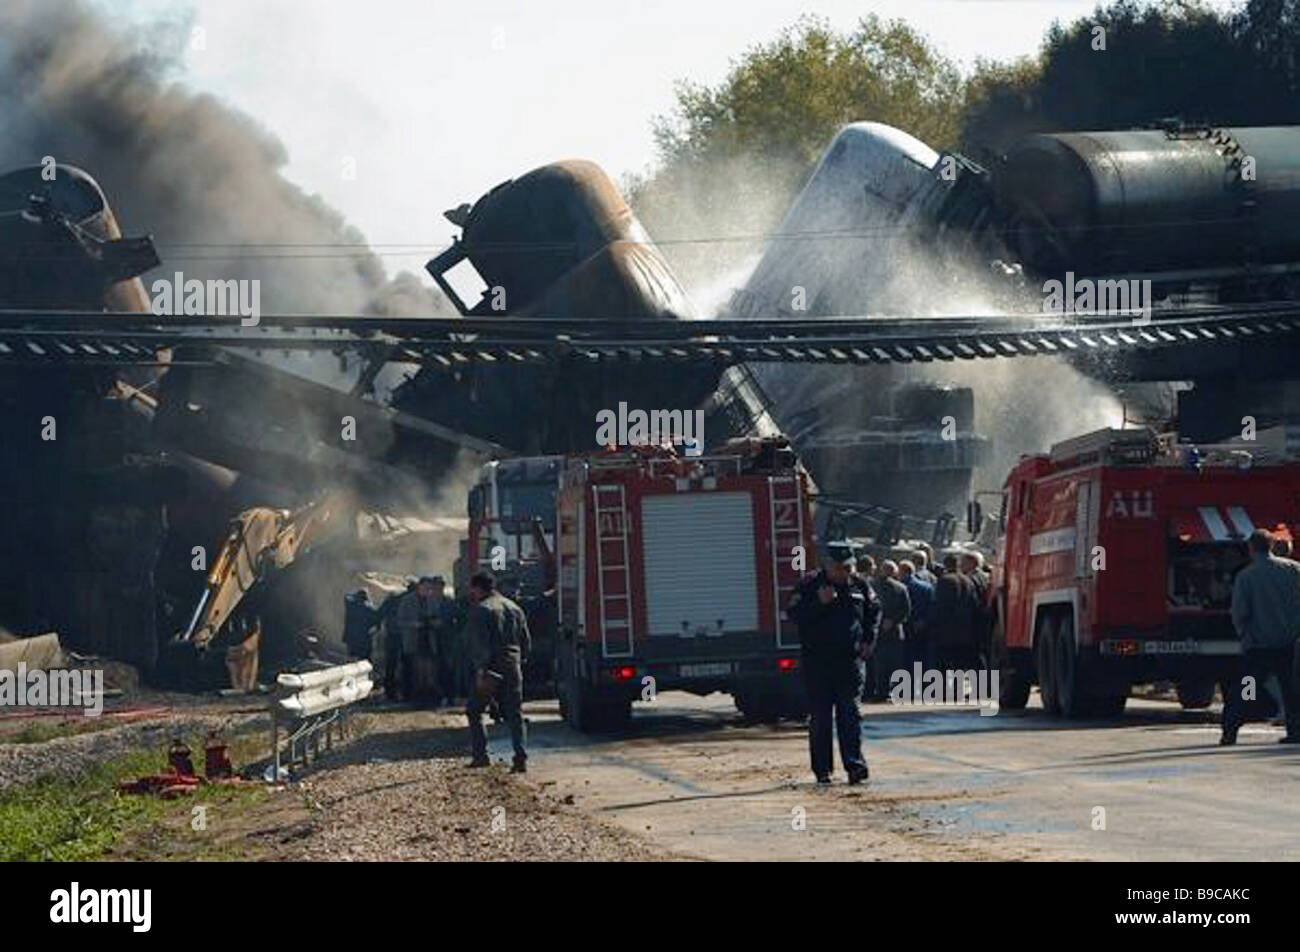 The fire service officers putting out fire in tank cars after the accident when a freight train carrying diesel - Stock Image